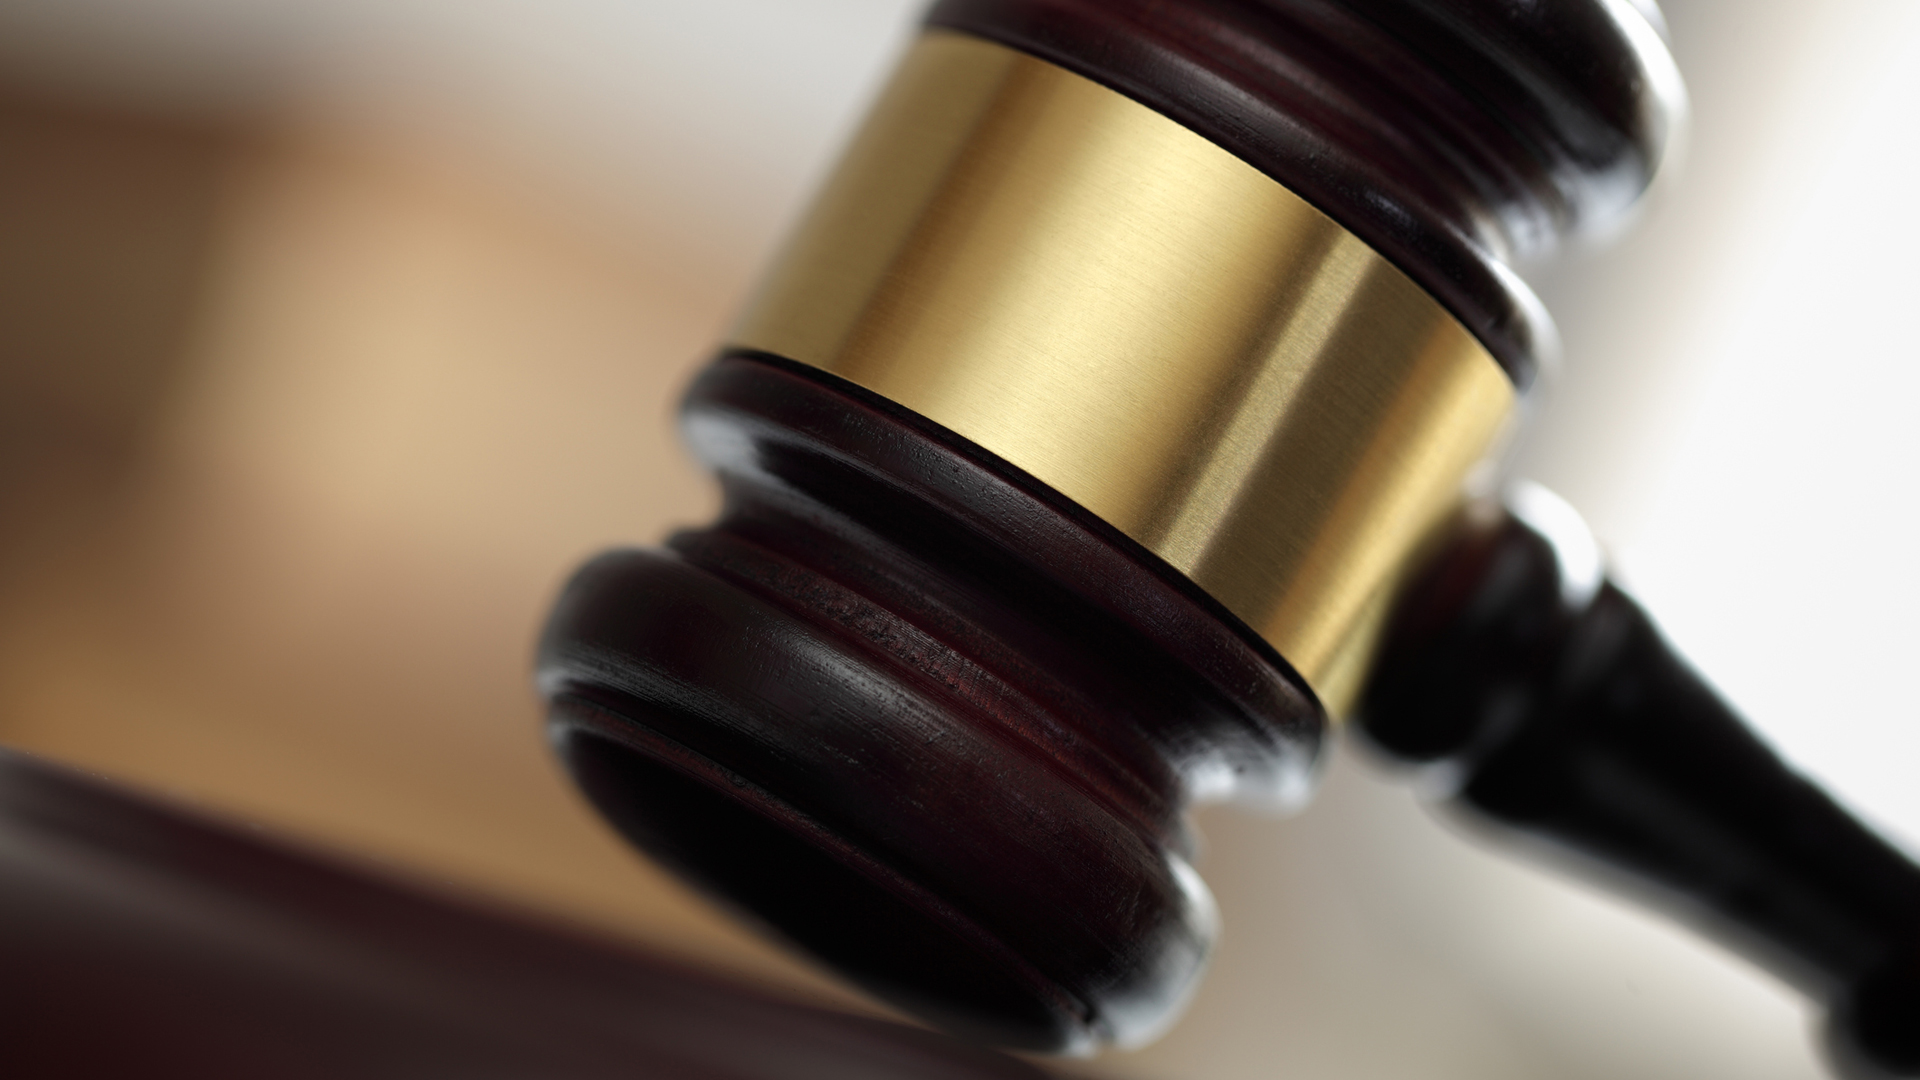 A courtroom gavel is seen in a file photo. (Credit: Brian A. Jackson/Thinkstock)